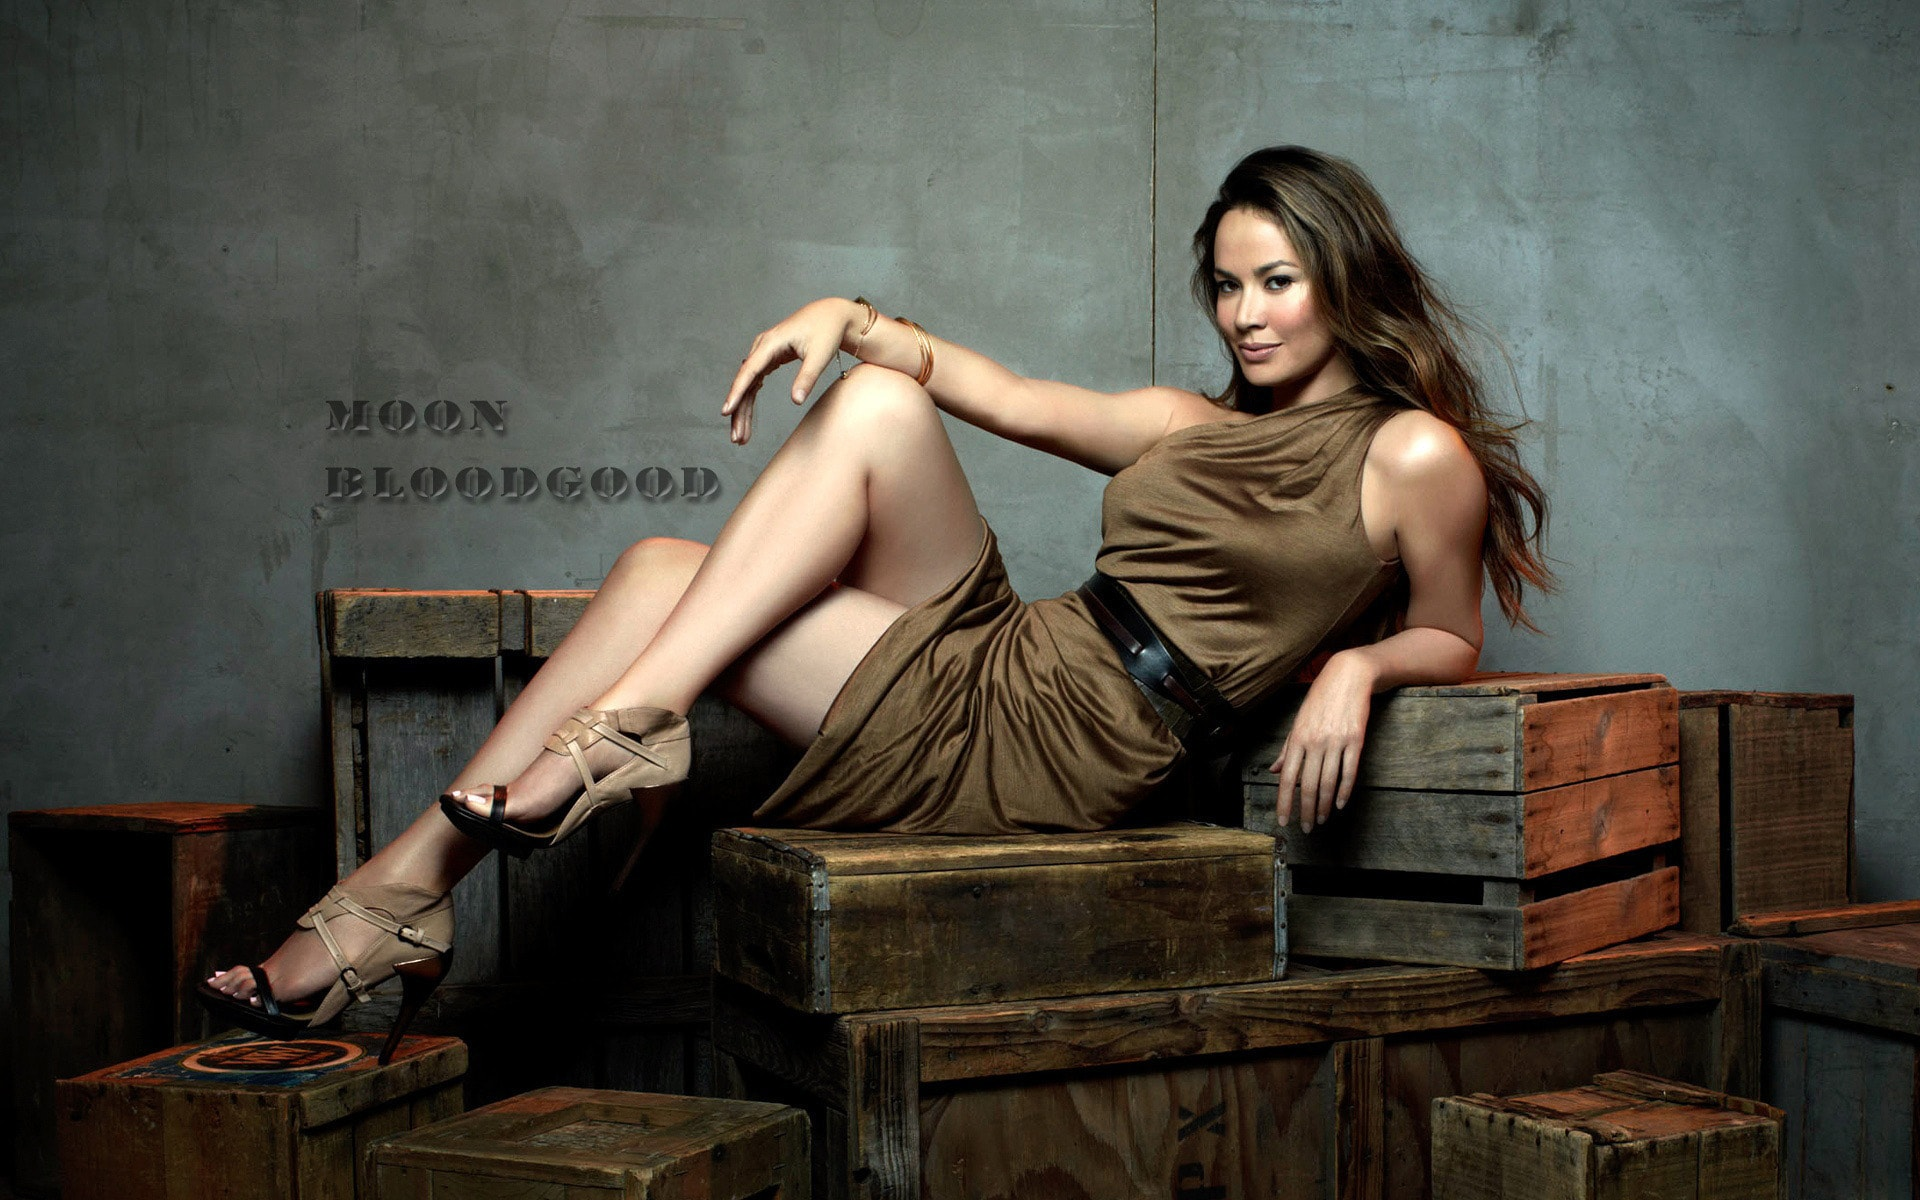 Moon Bloodgood widescreen wallpapers